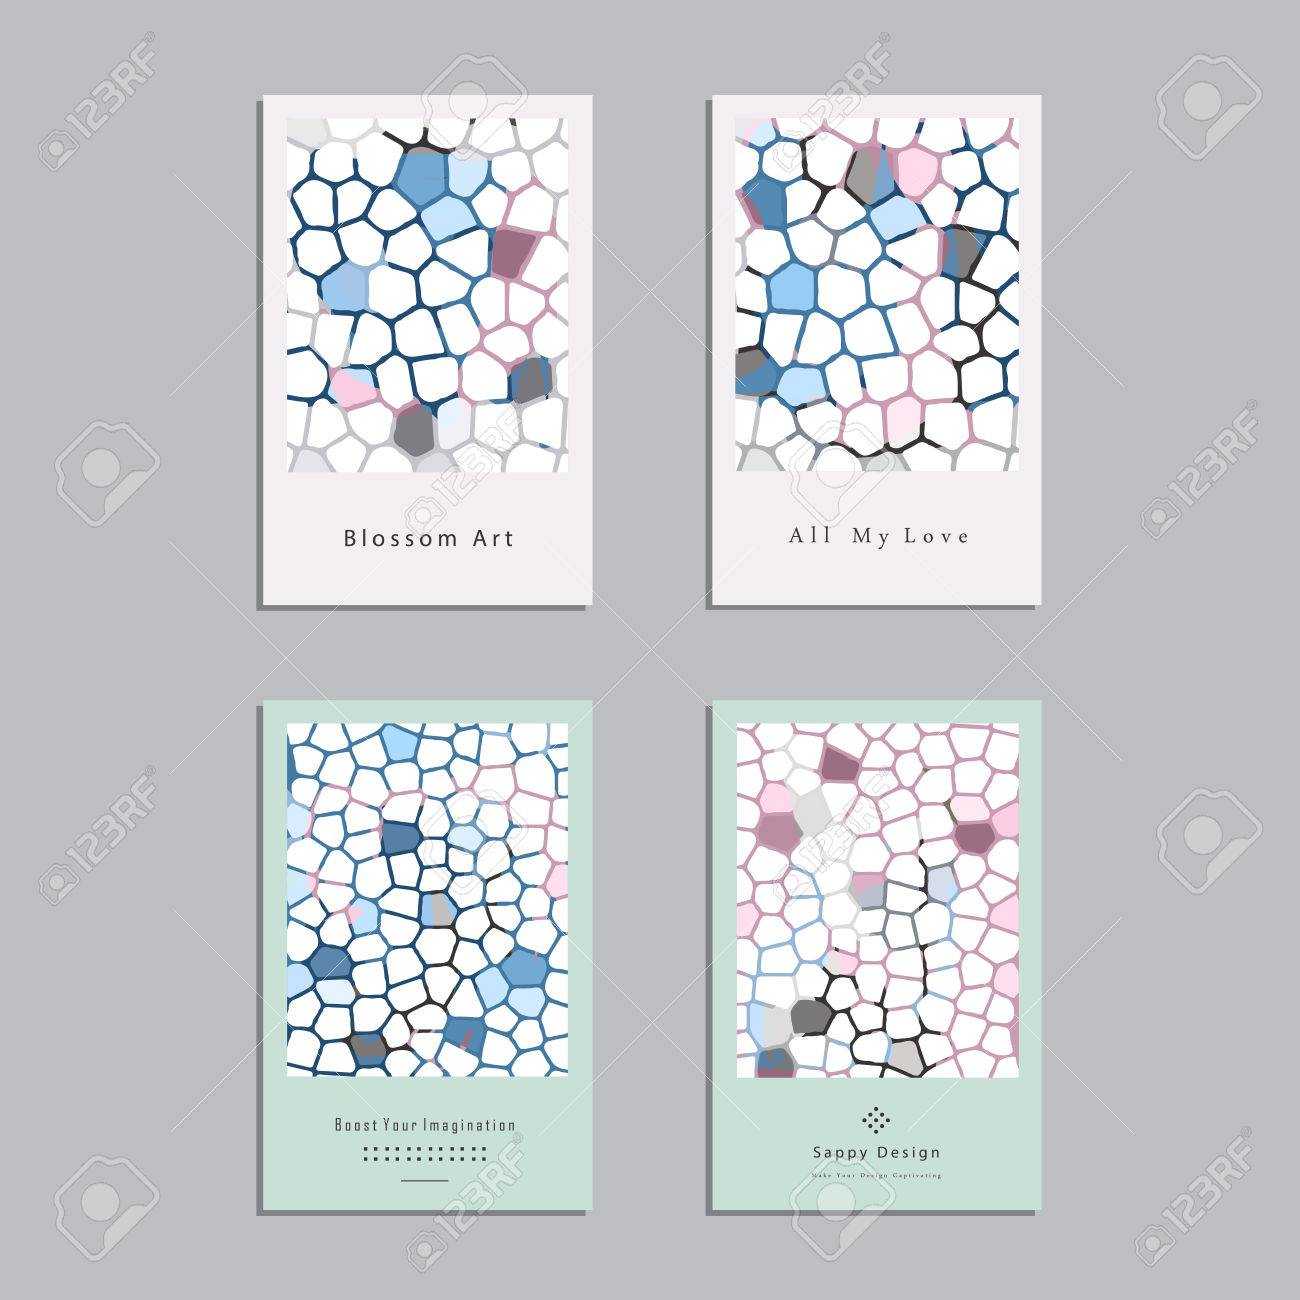 Set Of Artistic Vector Greeting Cards Design Colorful Frame Pattern Textures For Wedding Anniversary Birthday Valentine S Day Party Poster